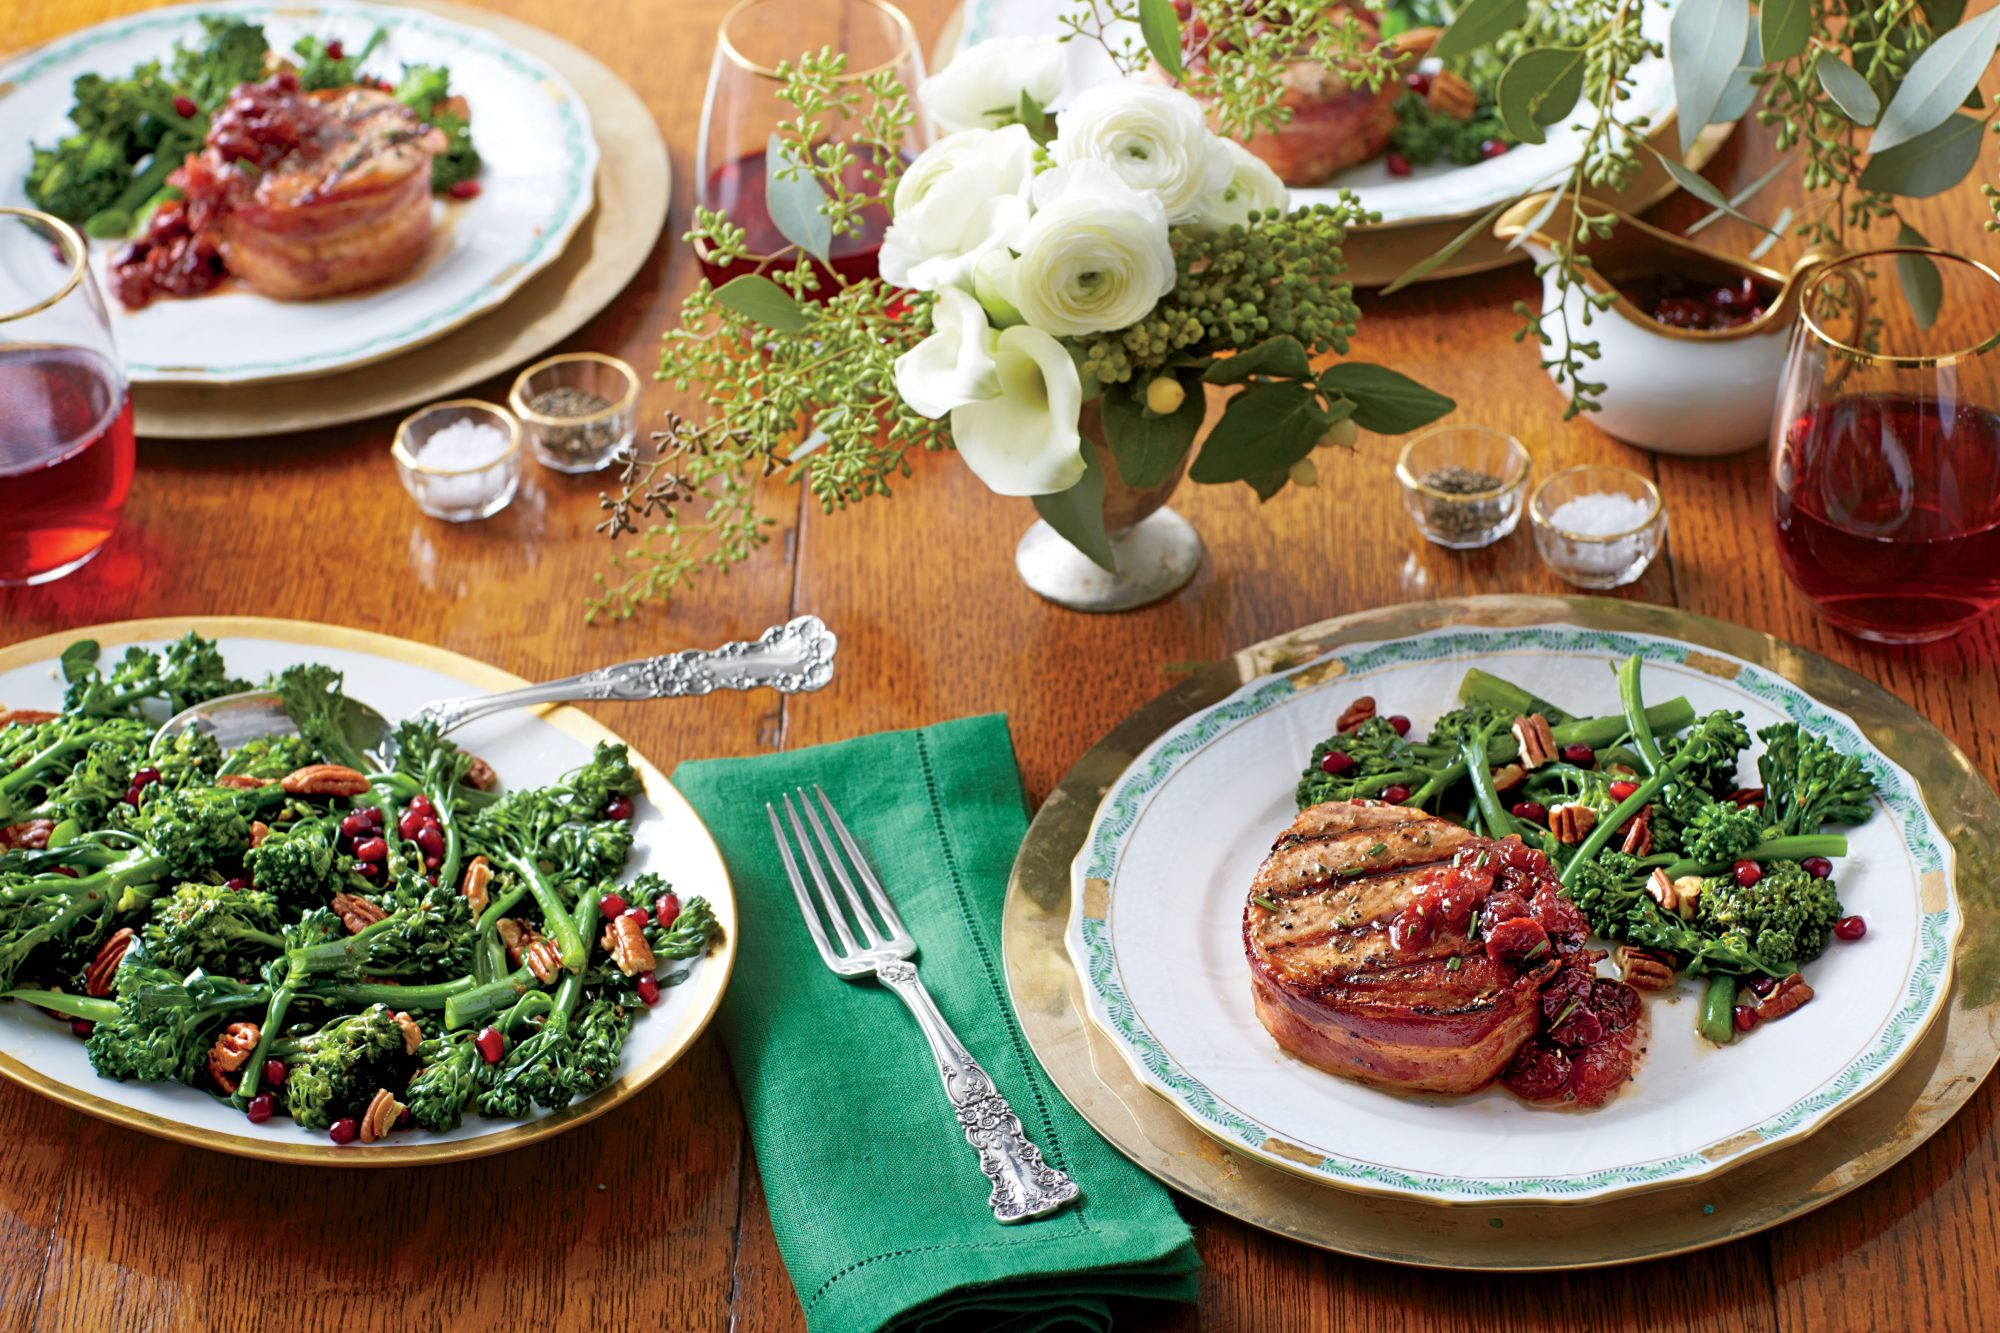 Grilled Pork Loin Steaks with Cherry-Plum Sauce Southern Living